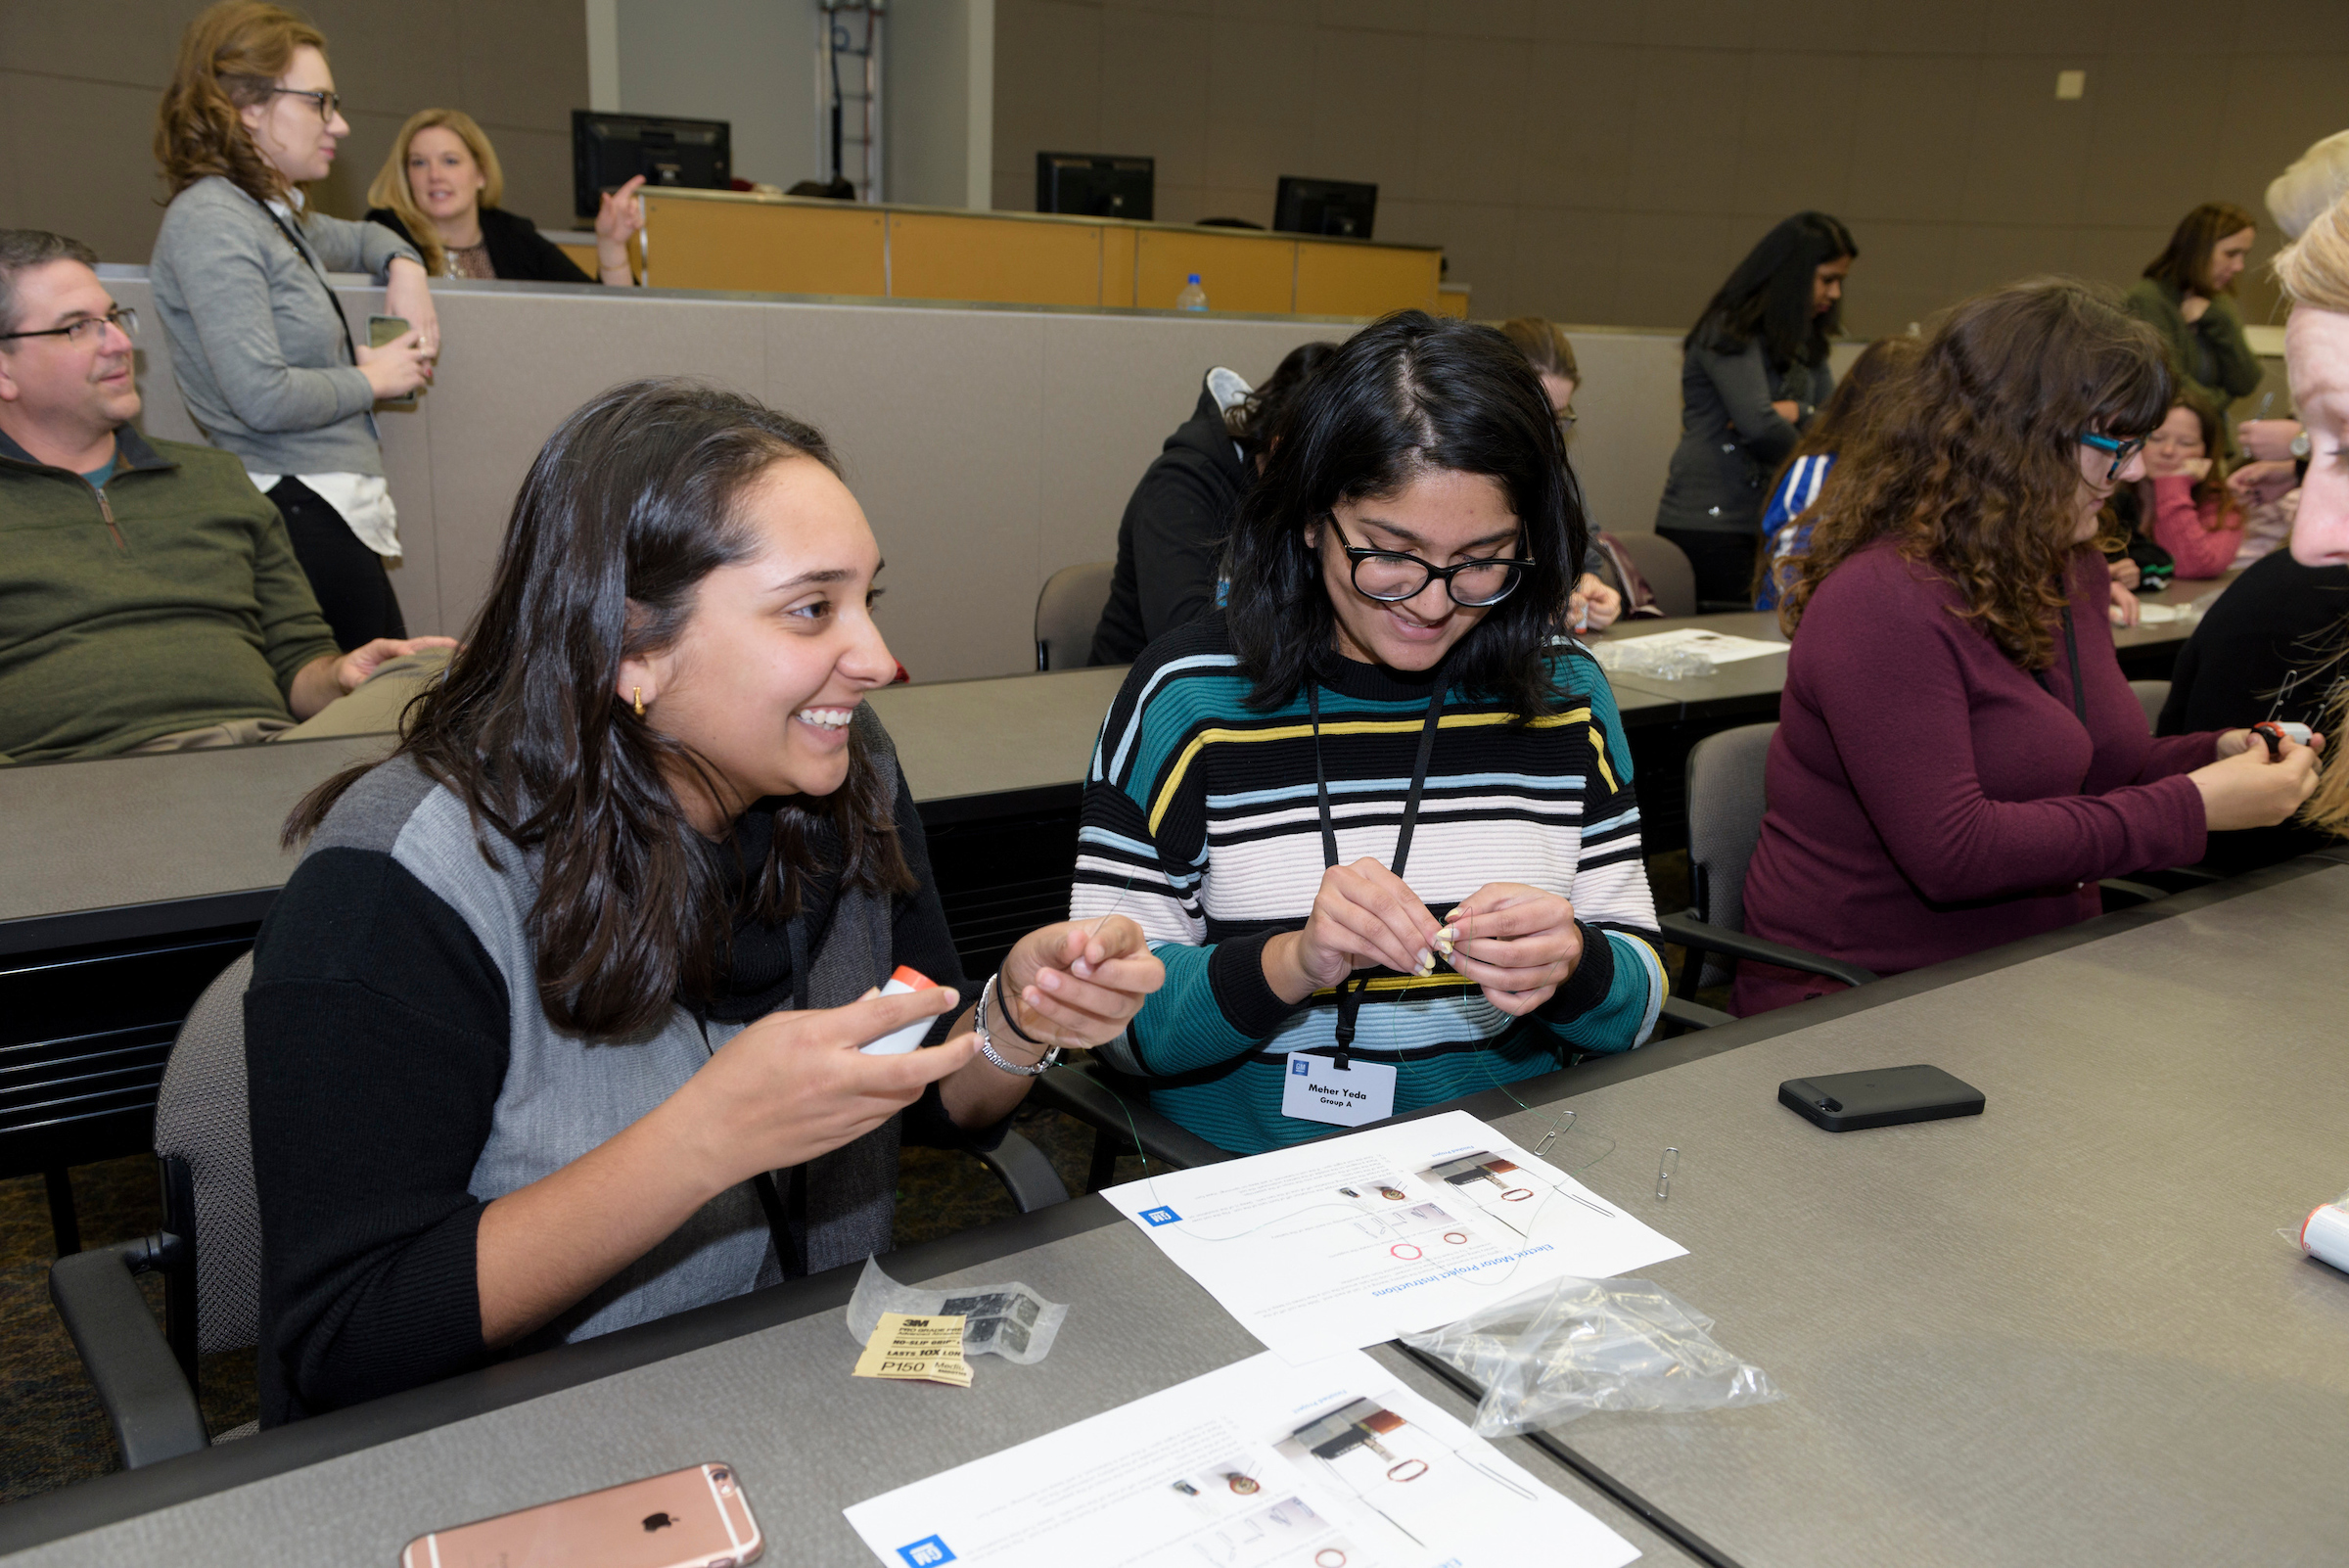 GM launches partnership with Girls Who Code